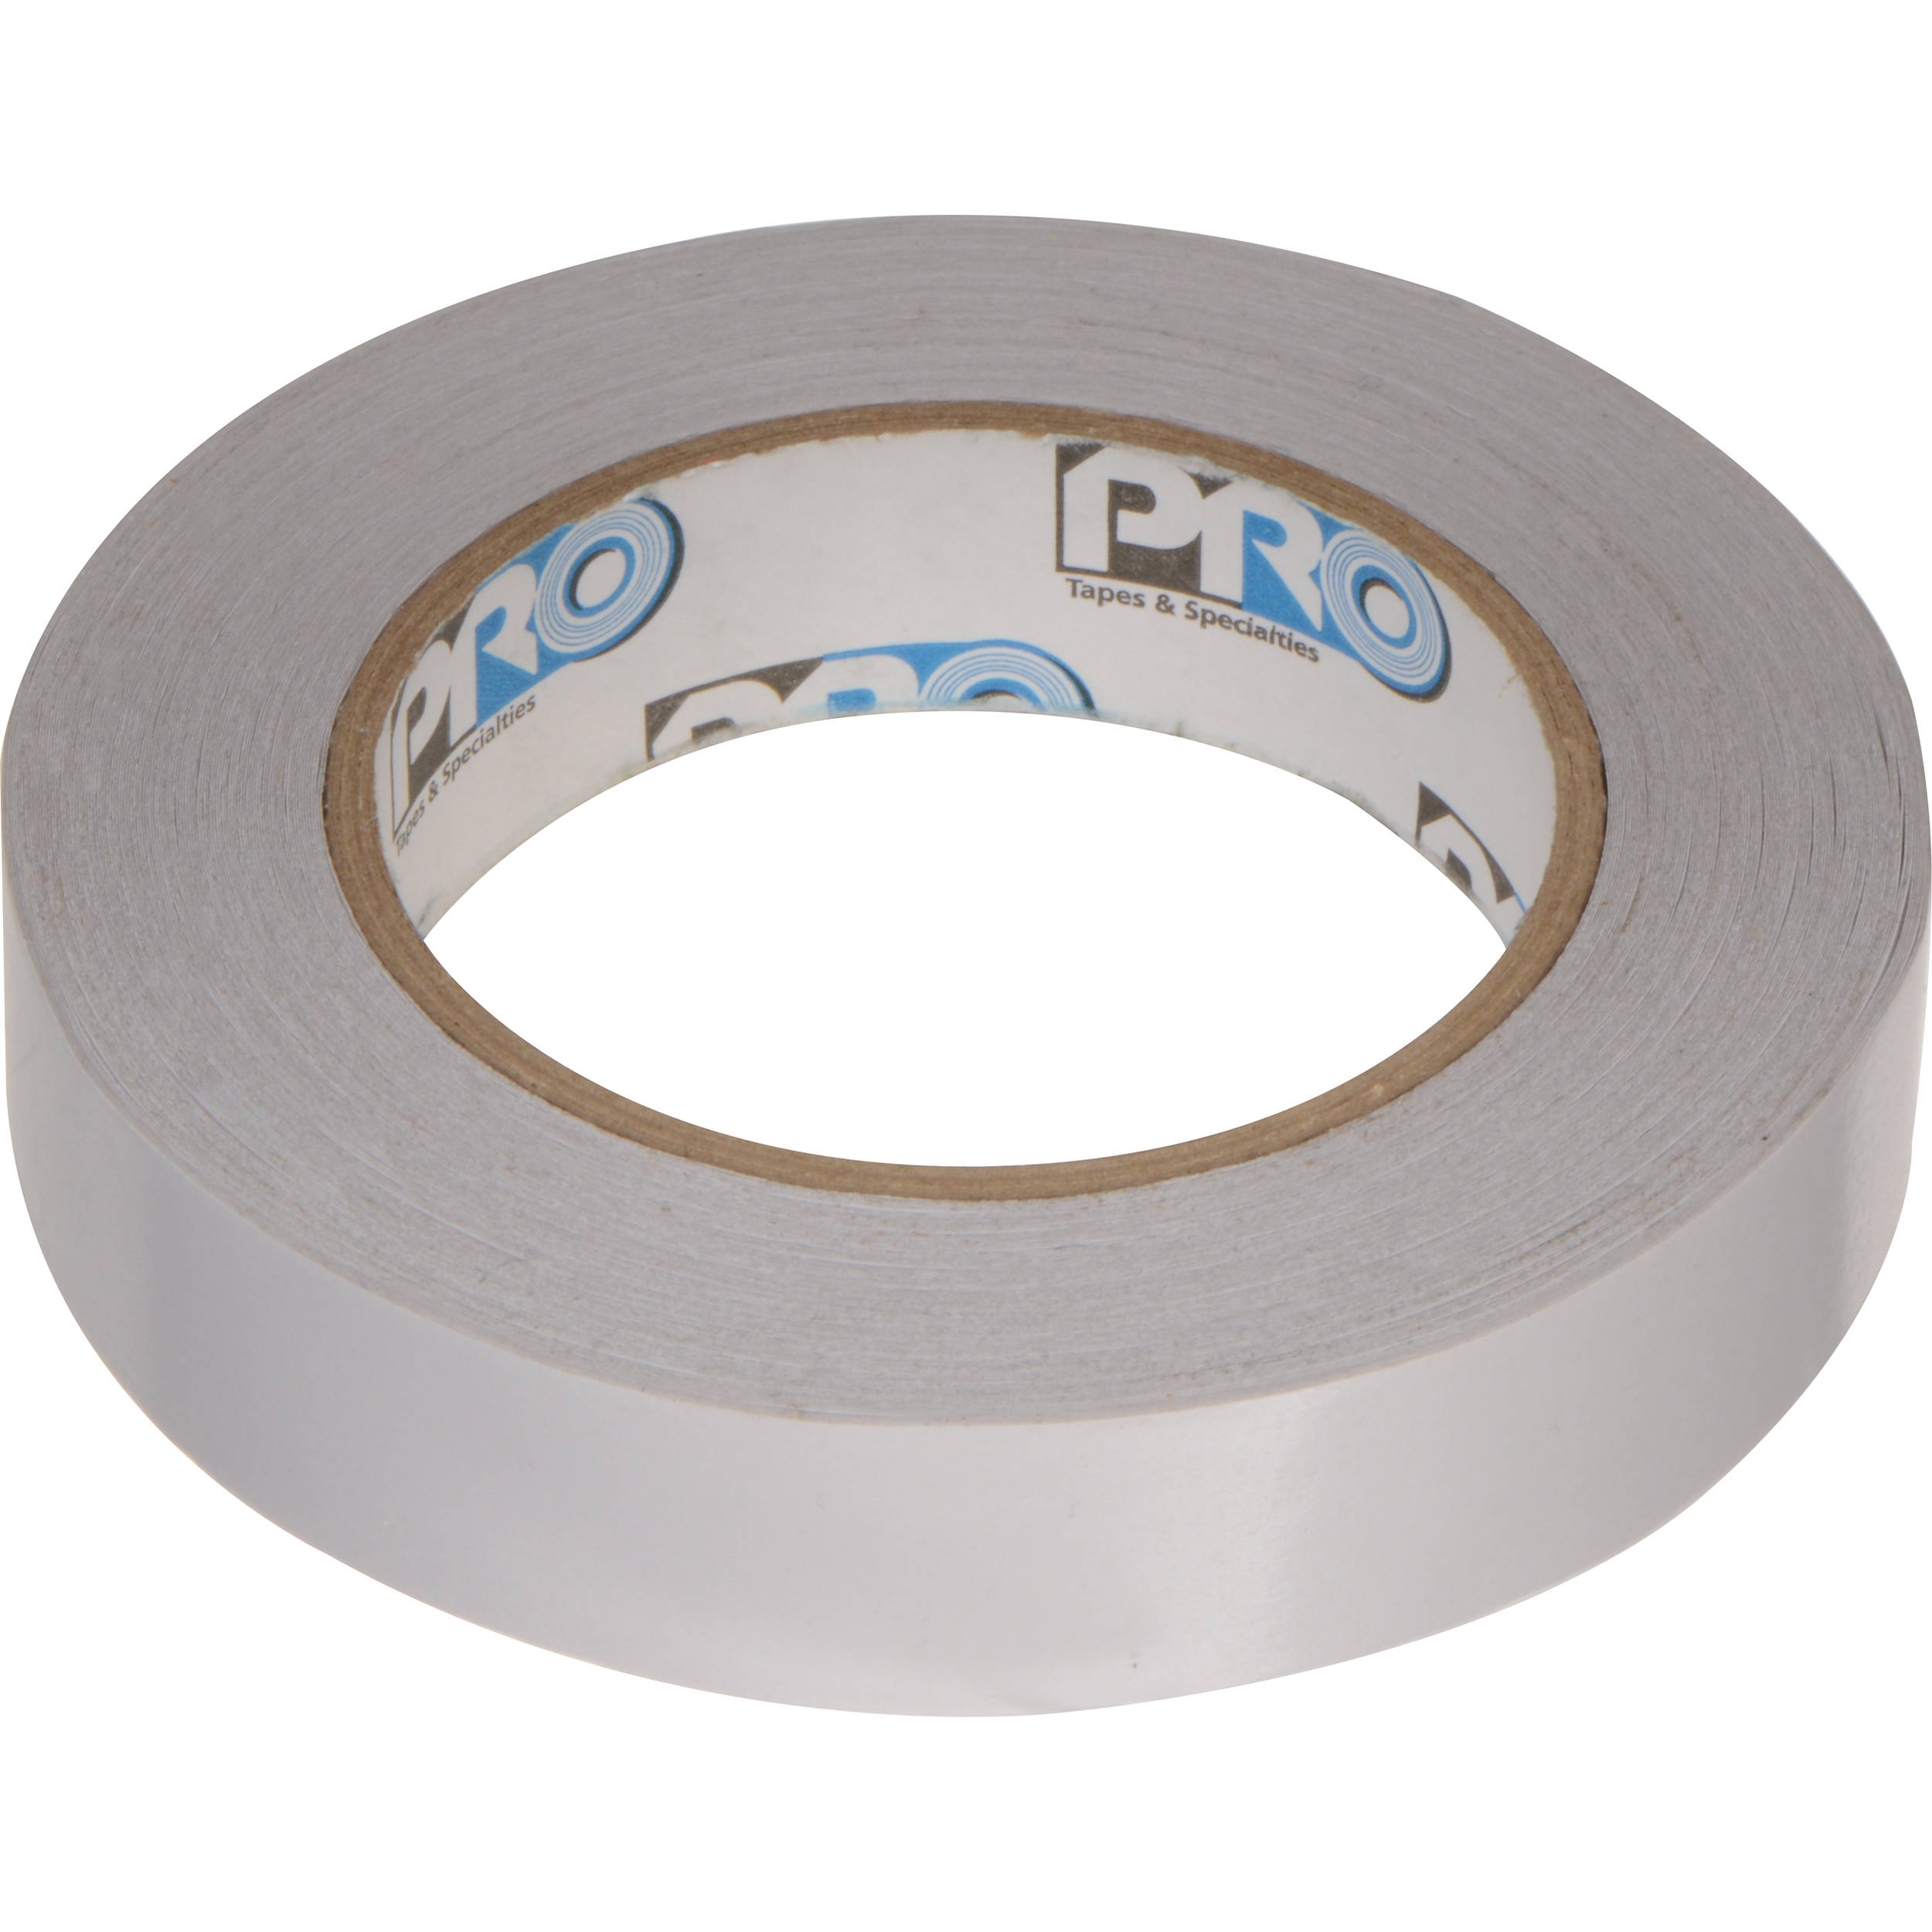 Protapes Double Sided Clear Tape With Liner